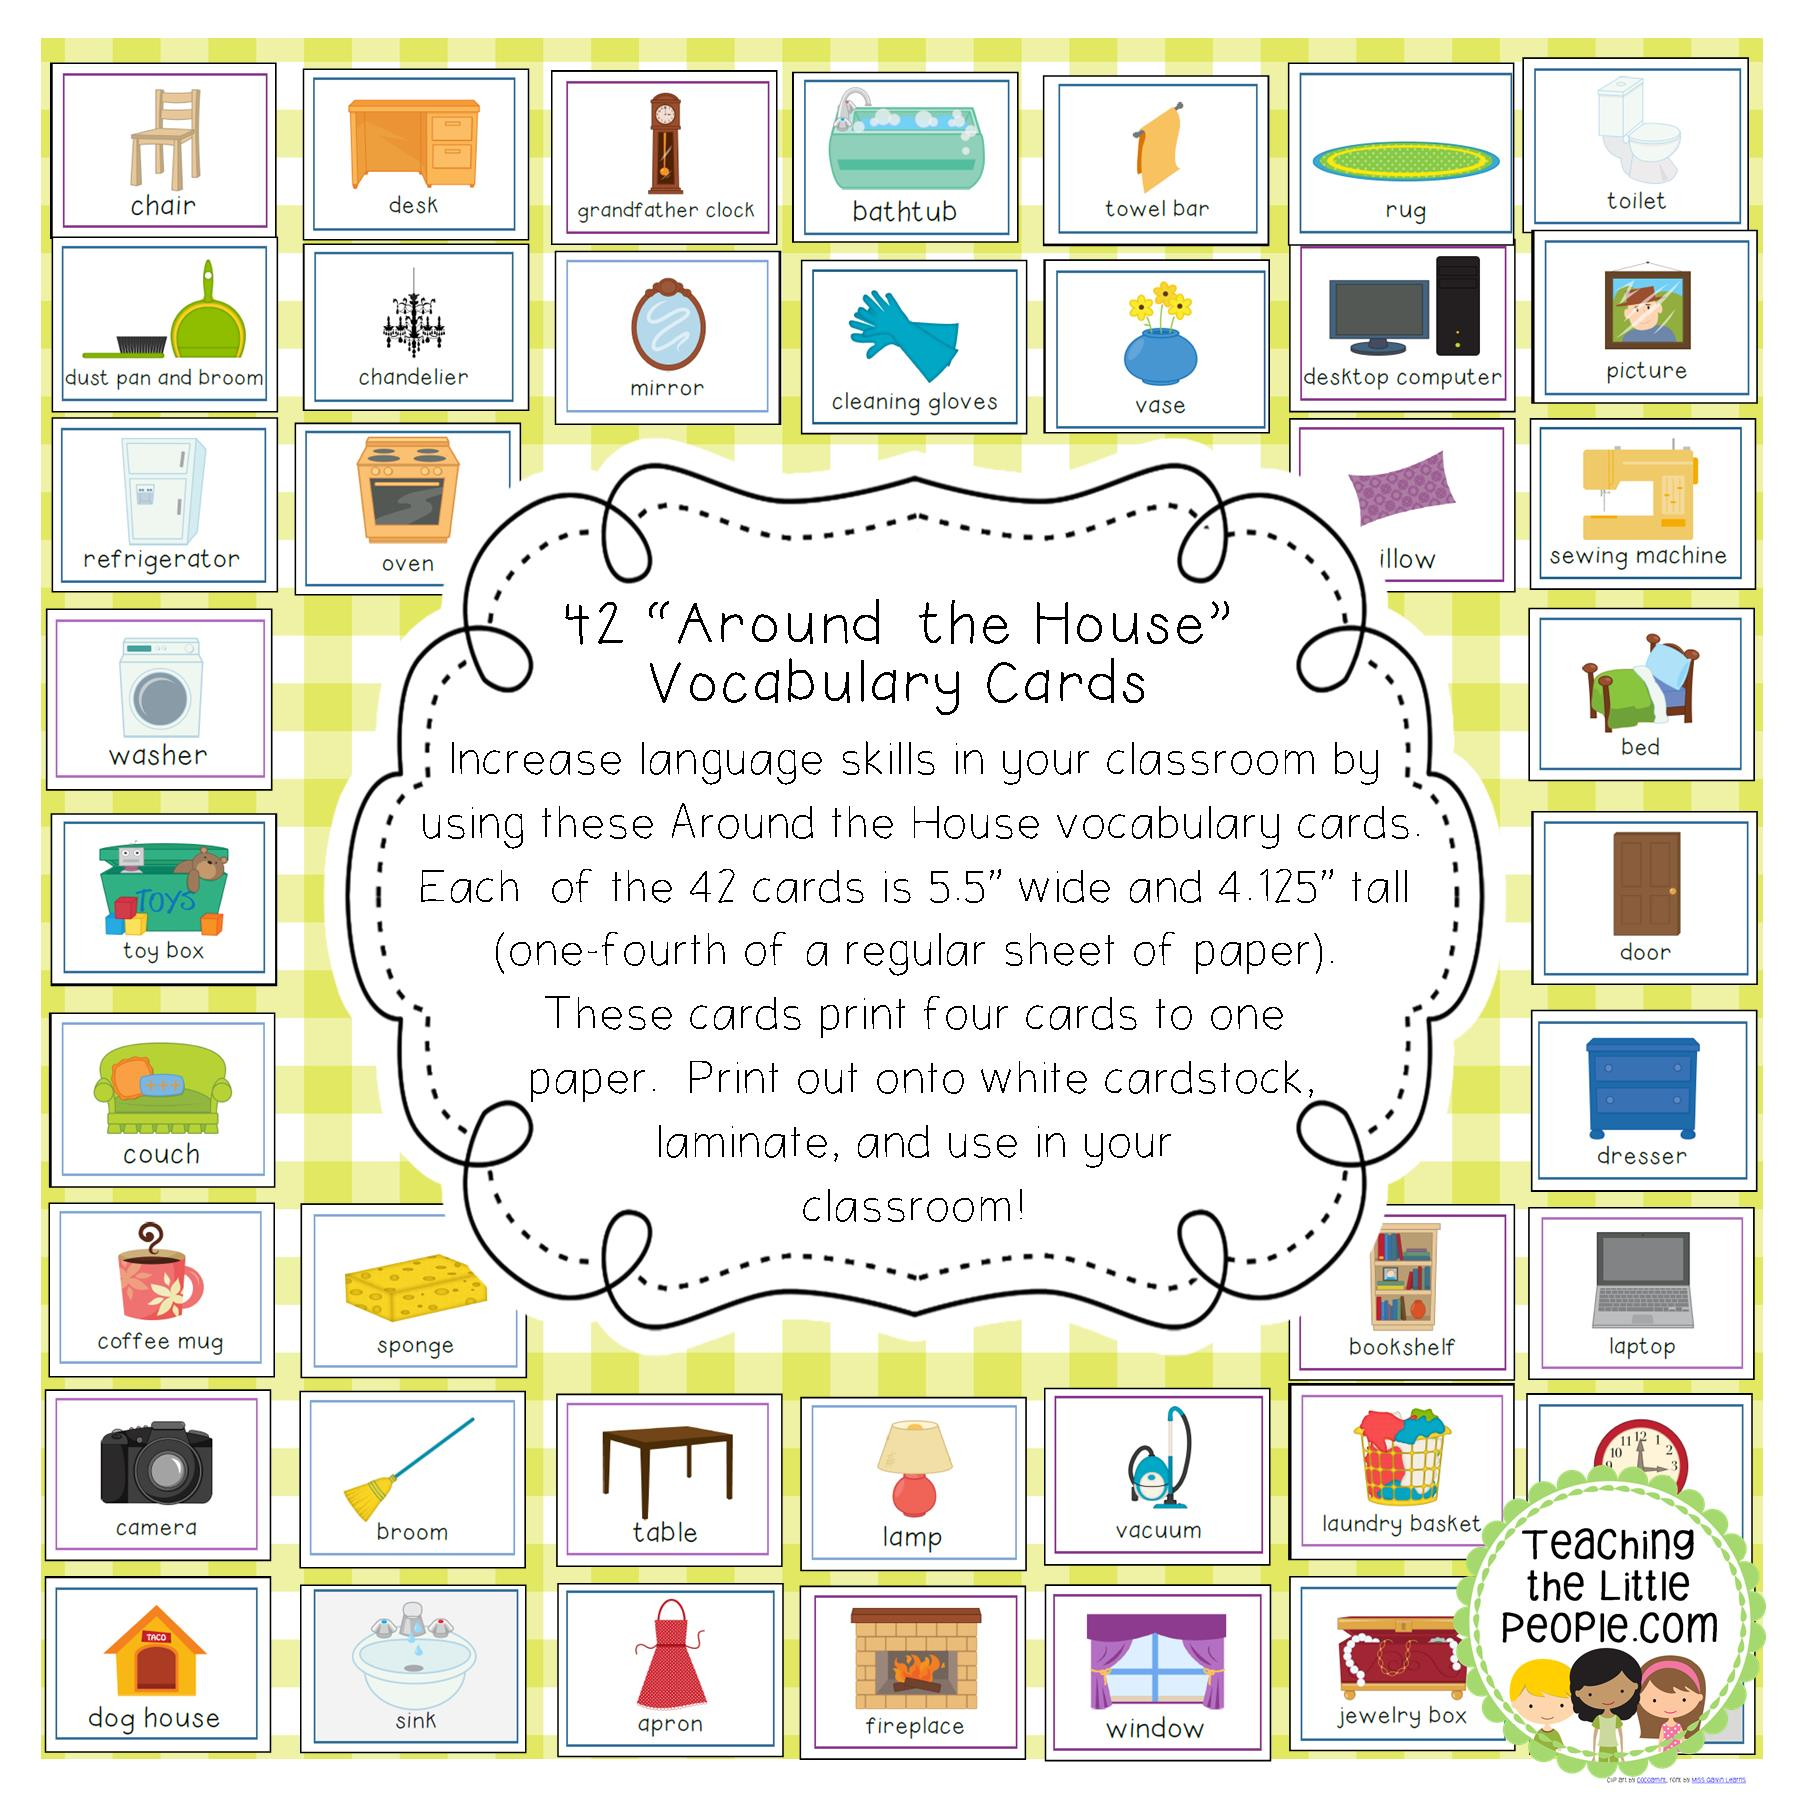 42 Around the House Vocabulary Cards for Early Grades Image